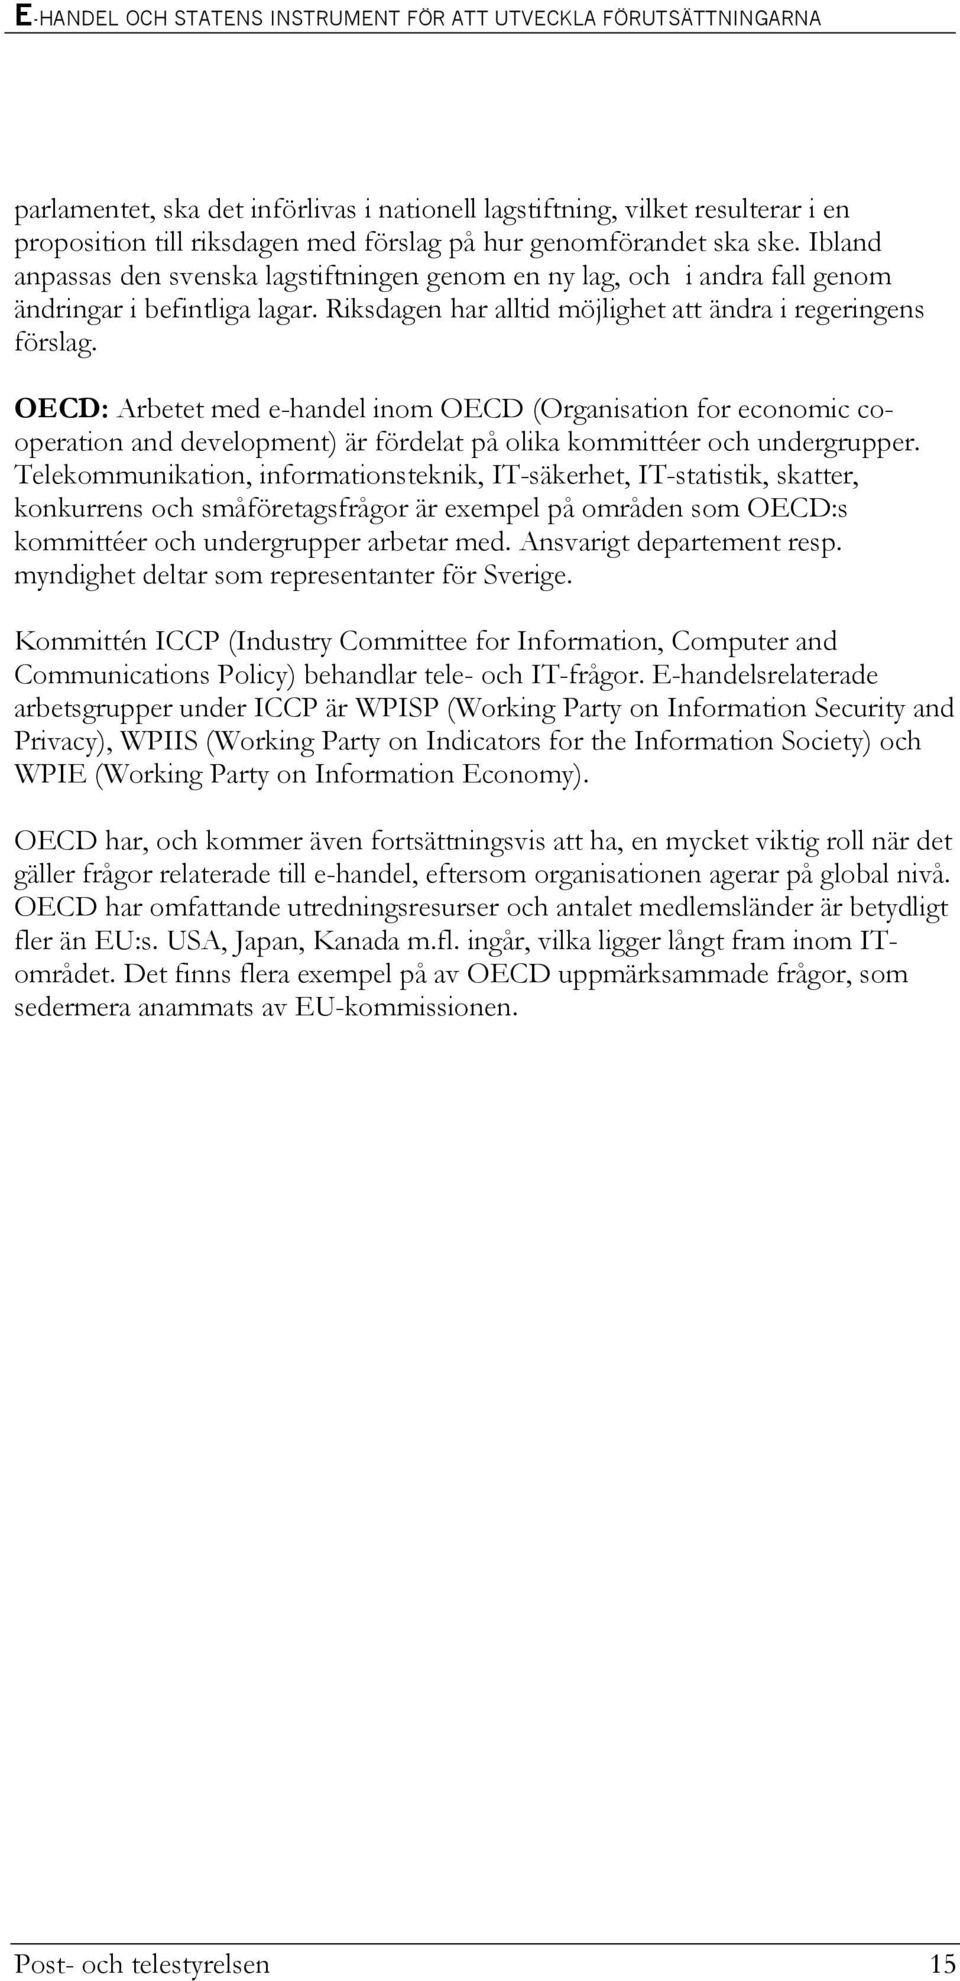 OECD: Arbetet med e-handel inom OECD (Organisation for economic cooperation and development) är fördelat på olika kommittéer och undergrupper.